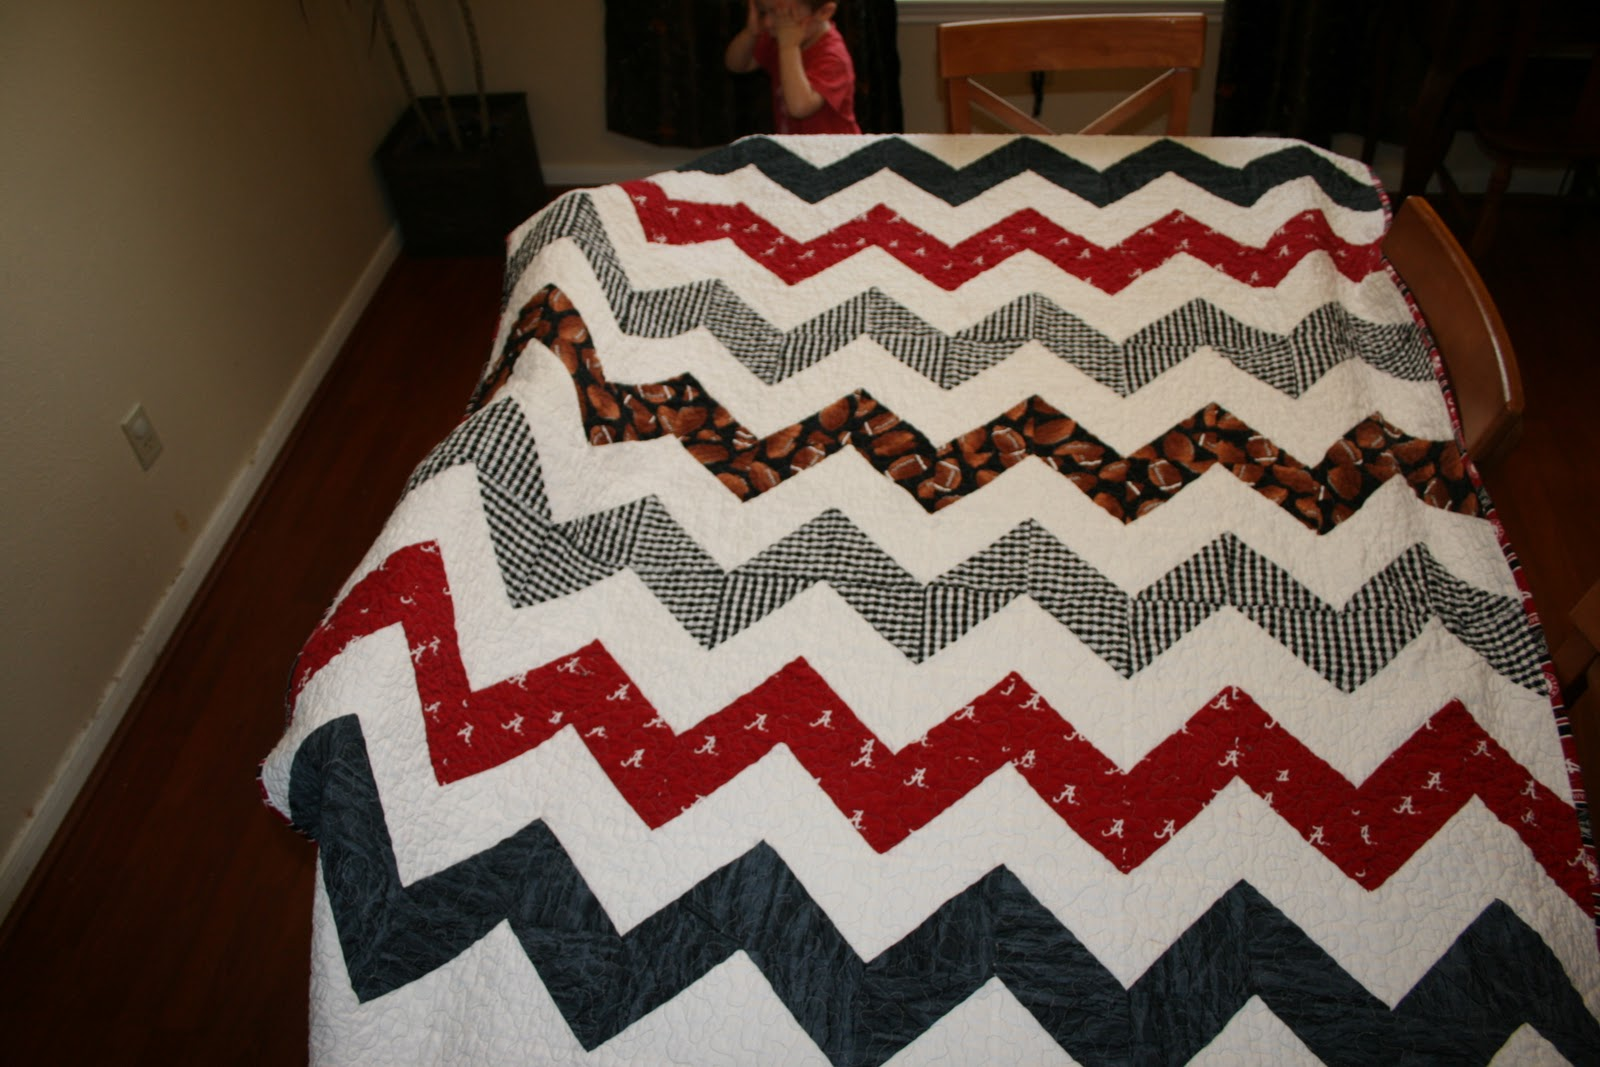 Alabama Football Quilt Pattern http://tulip-patch.blogspot.com/2010/10/archives-zigzag-quilt.html